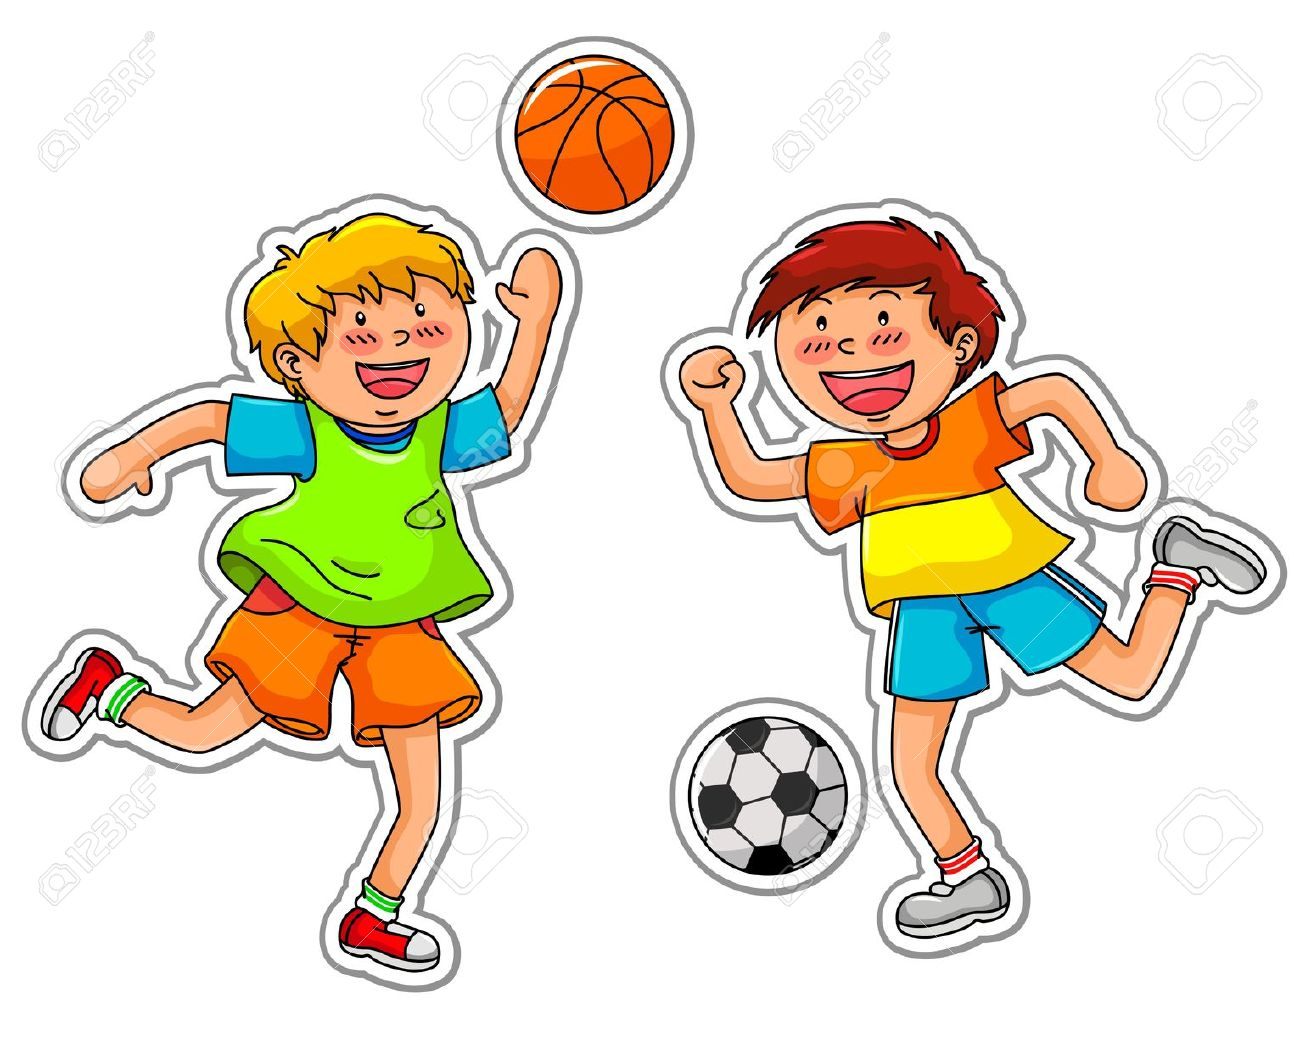 Physical education cartoon